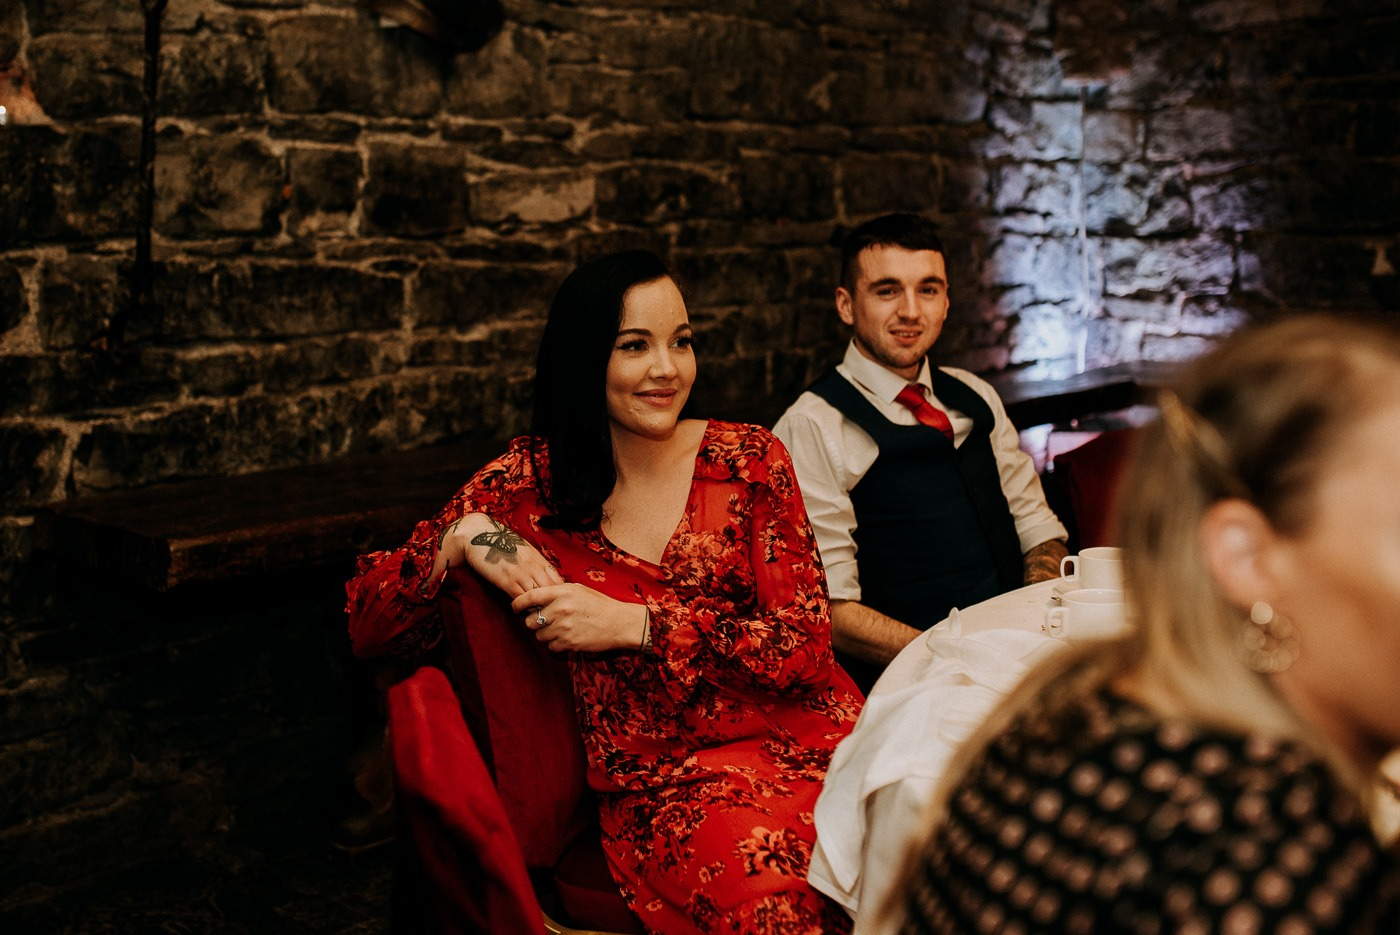 A man and a woman in a red dress